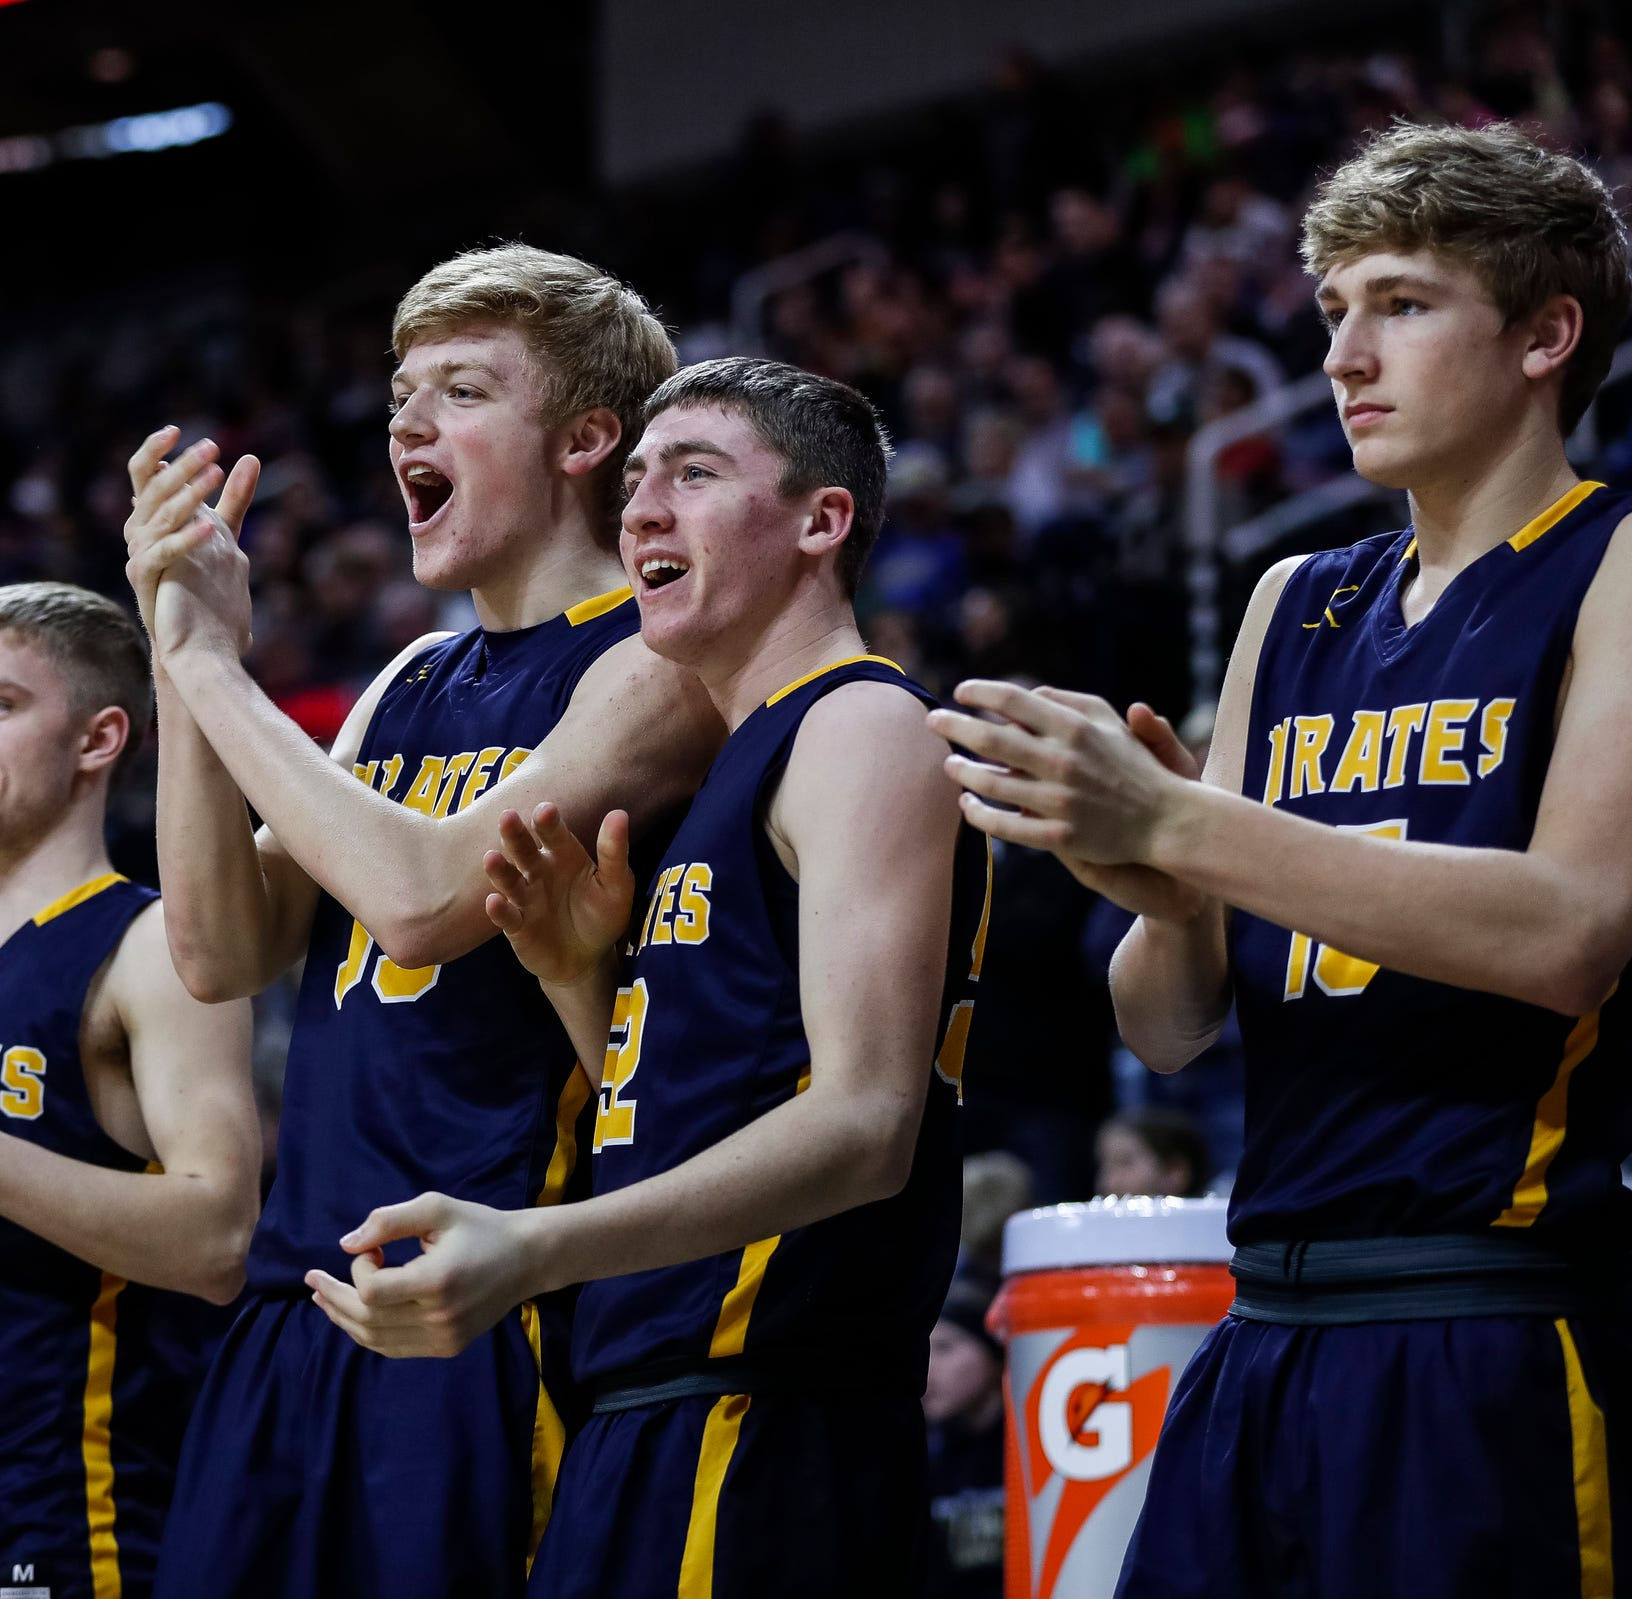 MHSAA boys state basketball: Division 3, 4 semifinal scores